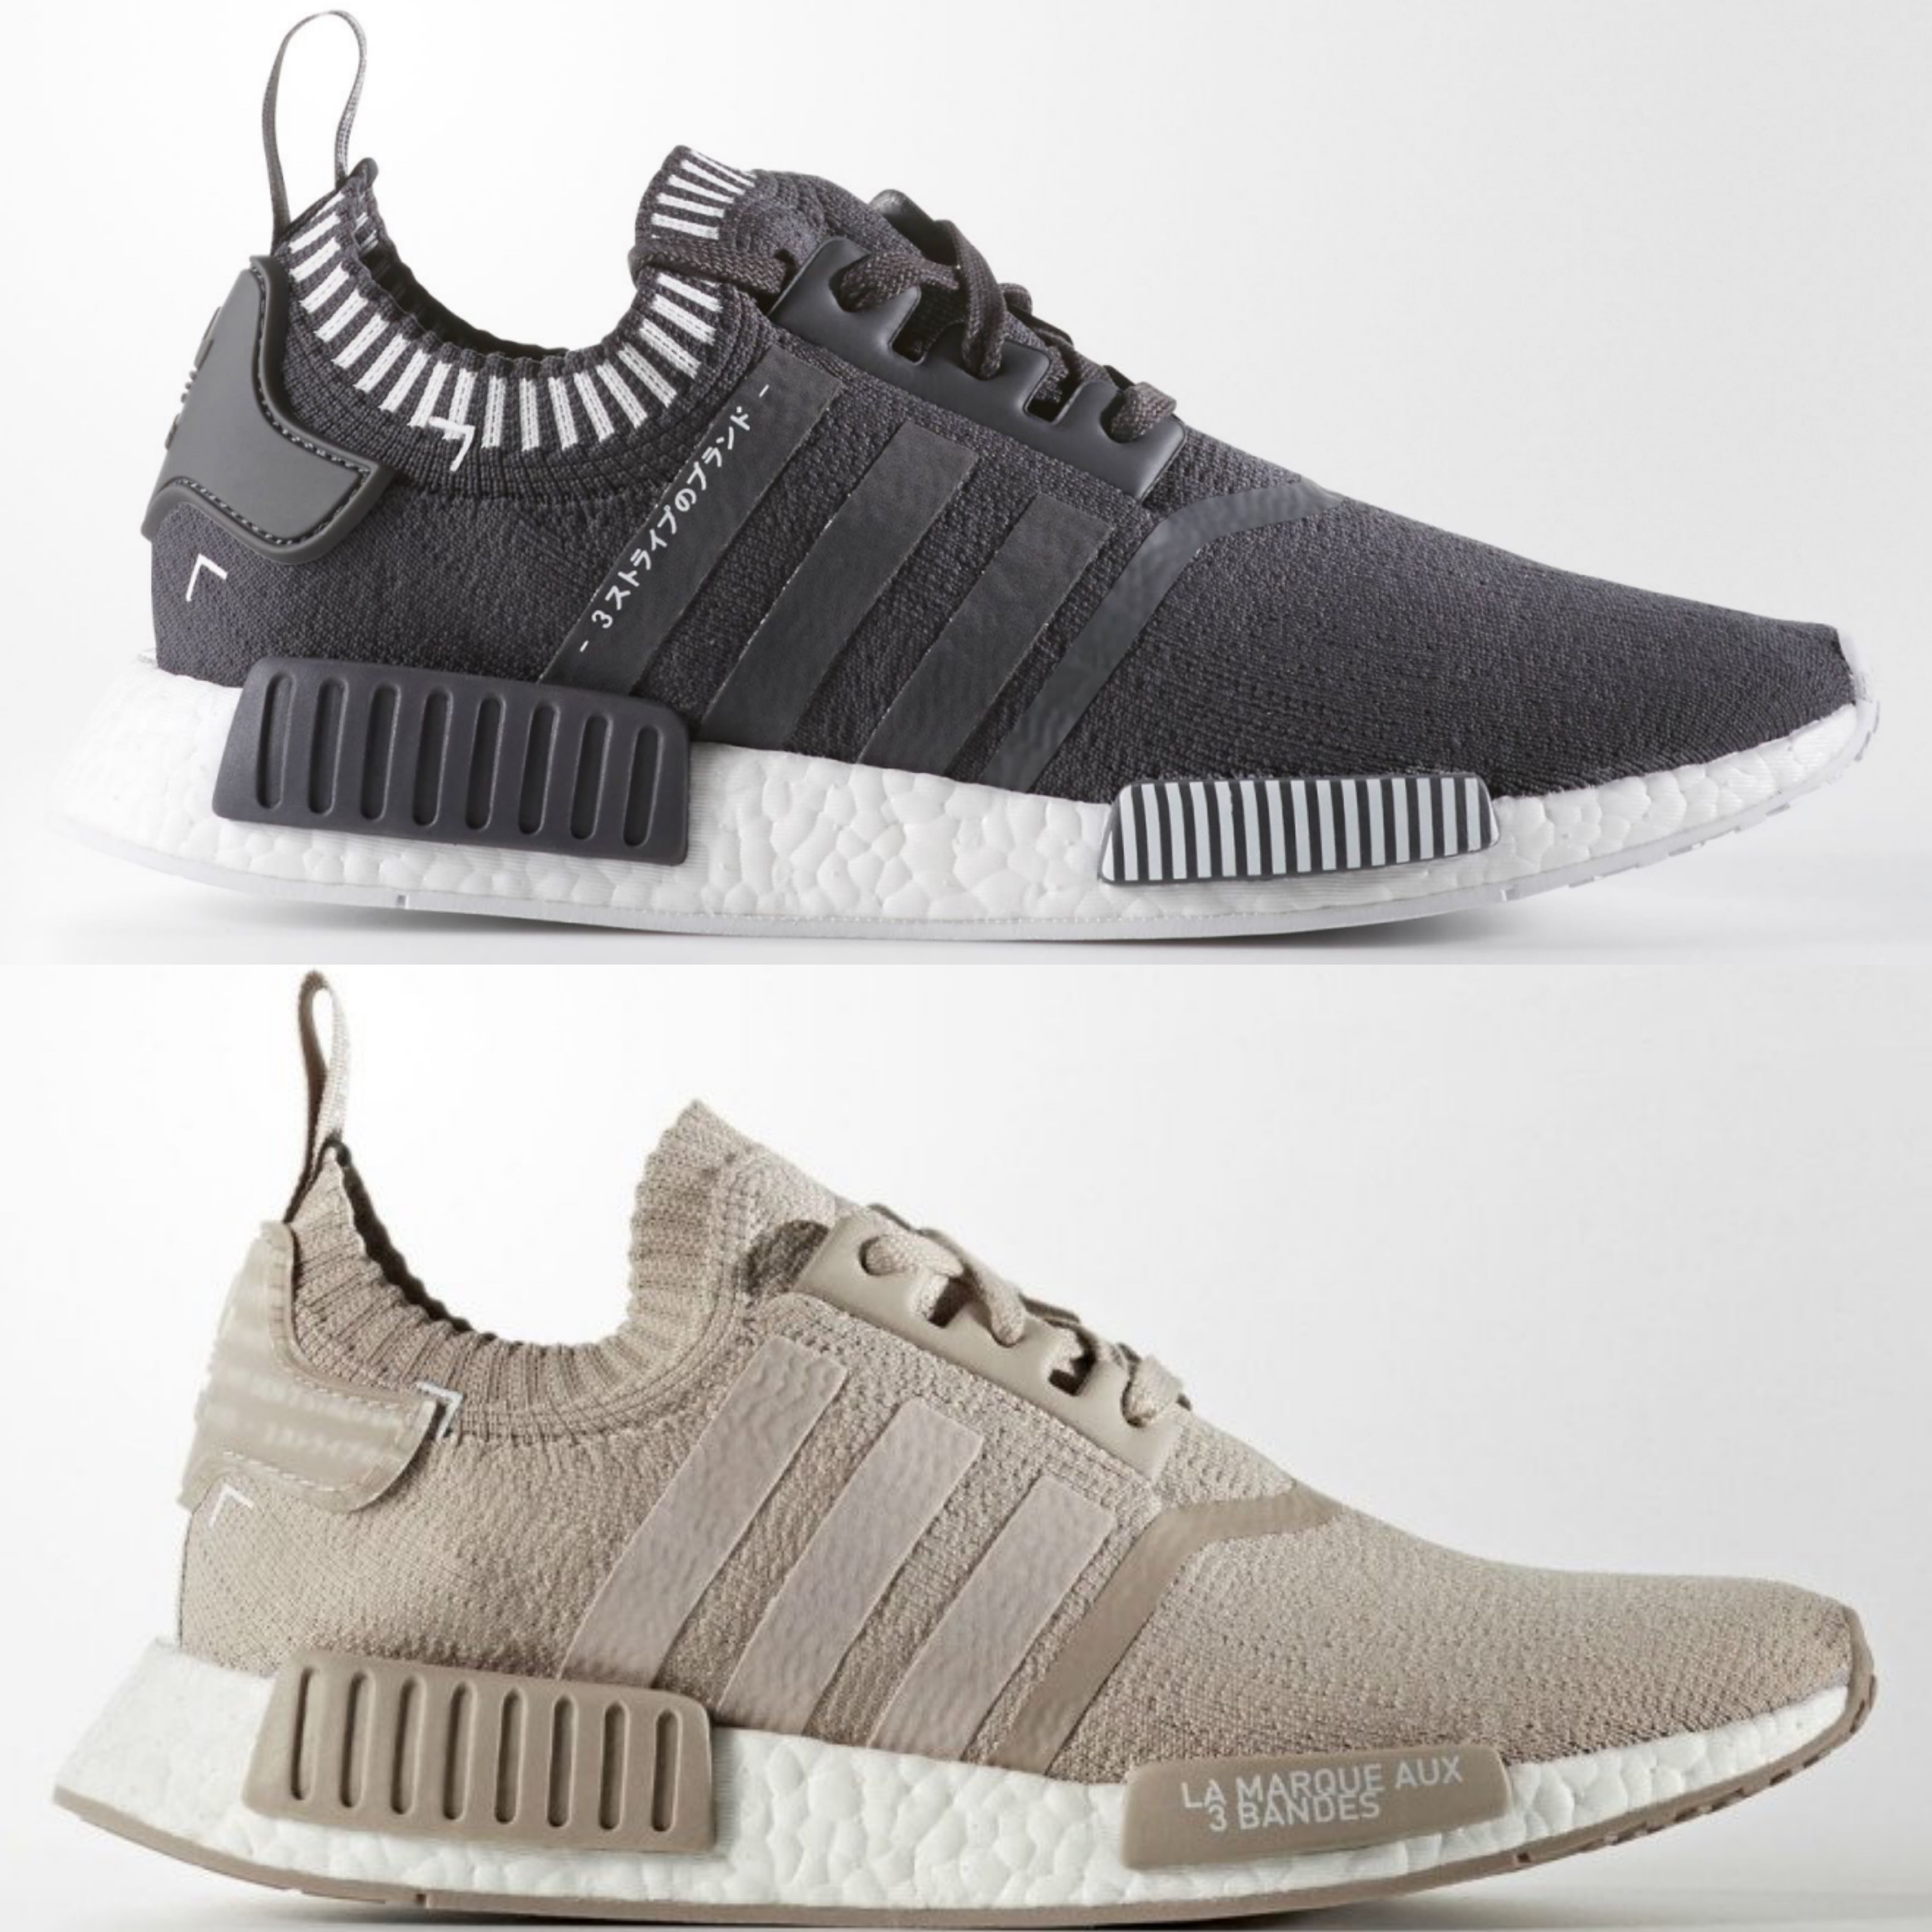 b6c6557c602dd The adidas NMD Runner R1  Language Pack  has Restocked - WearTesters